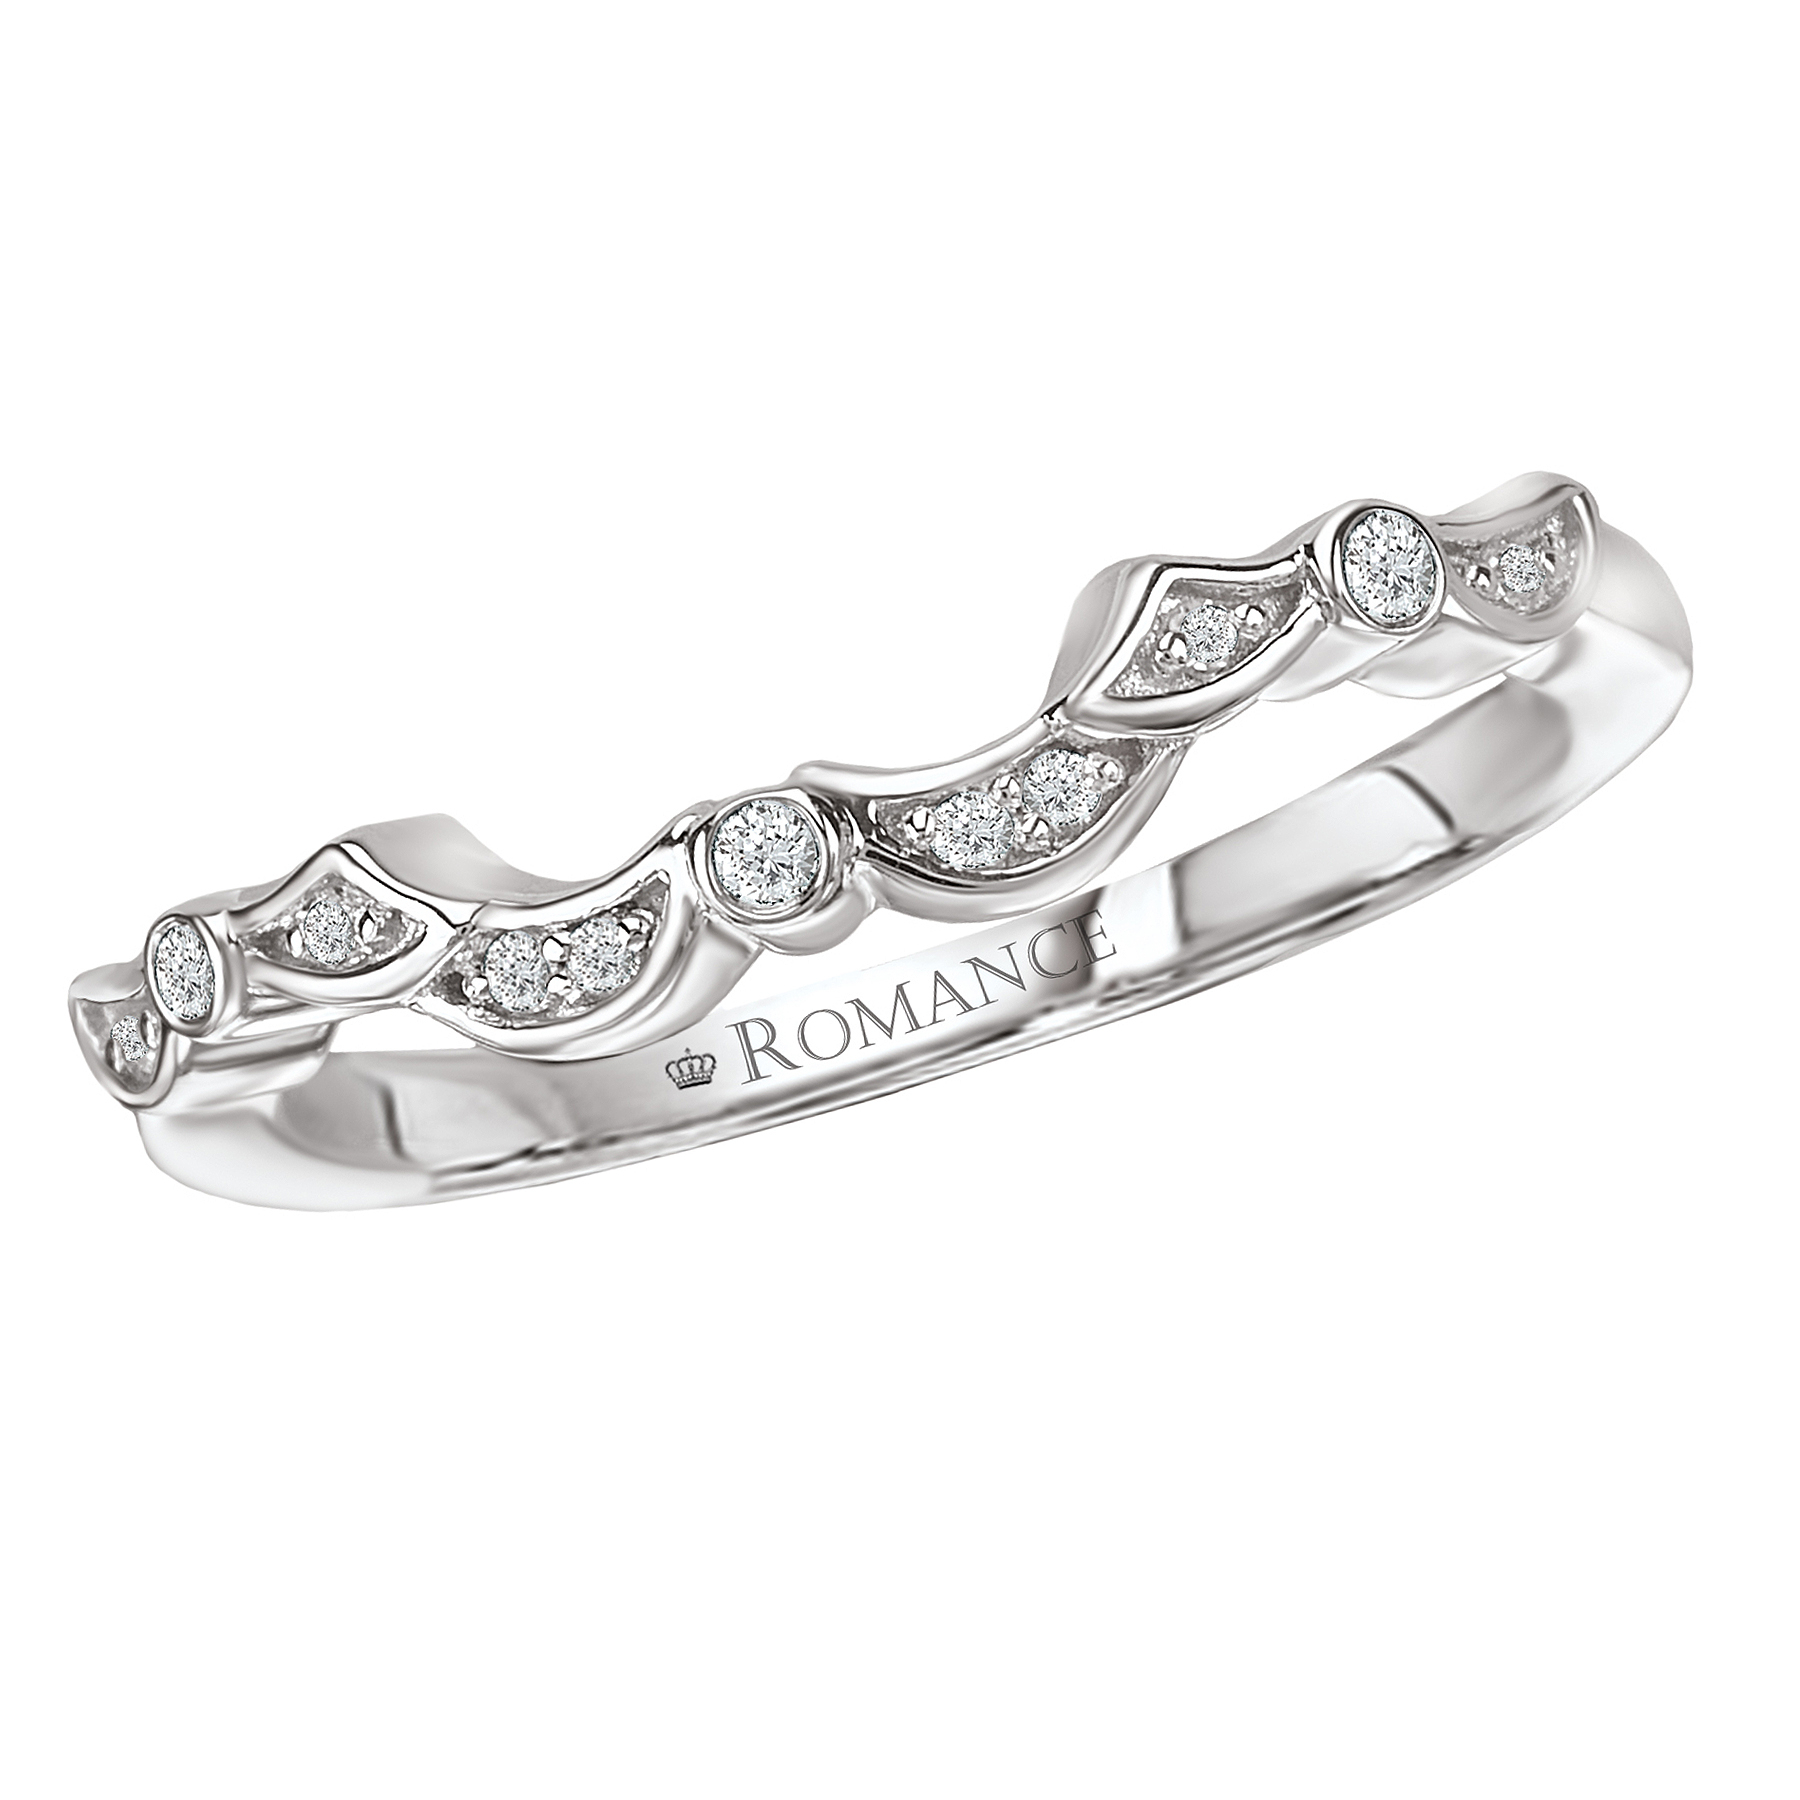 Romance Wedding Bands 117311-W product image